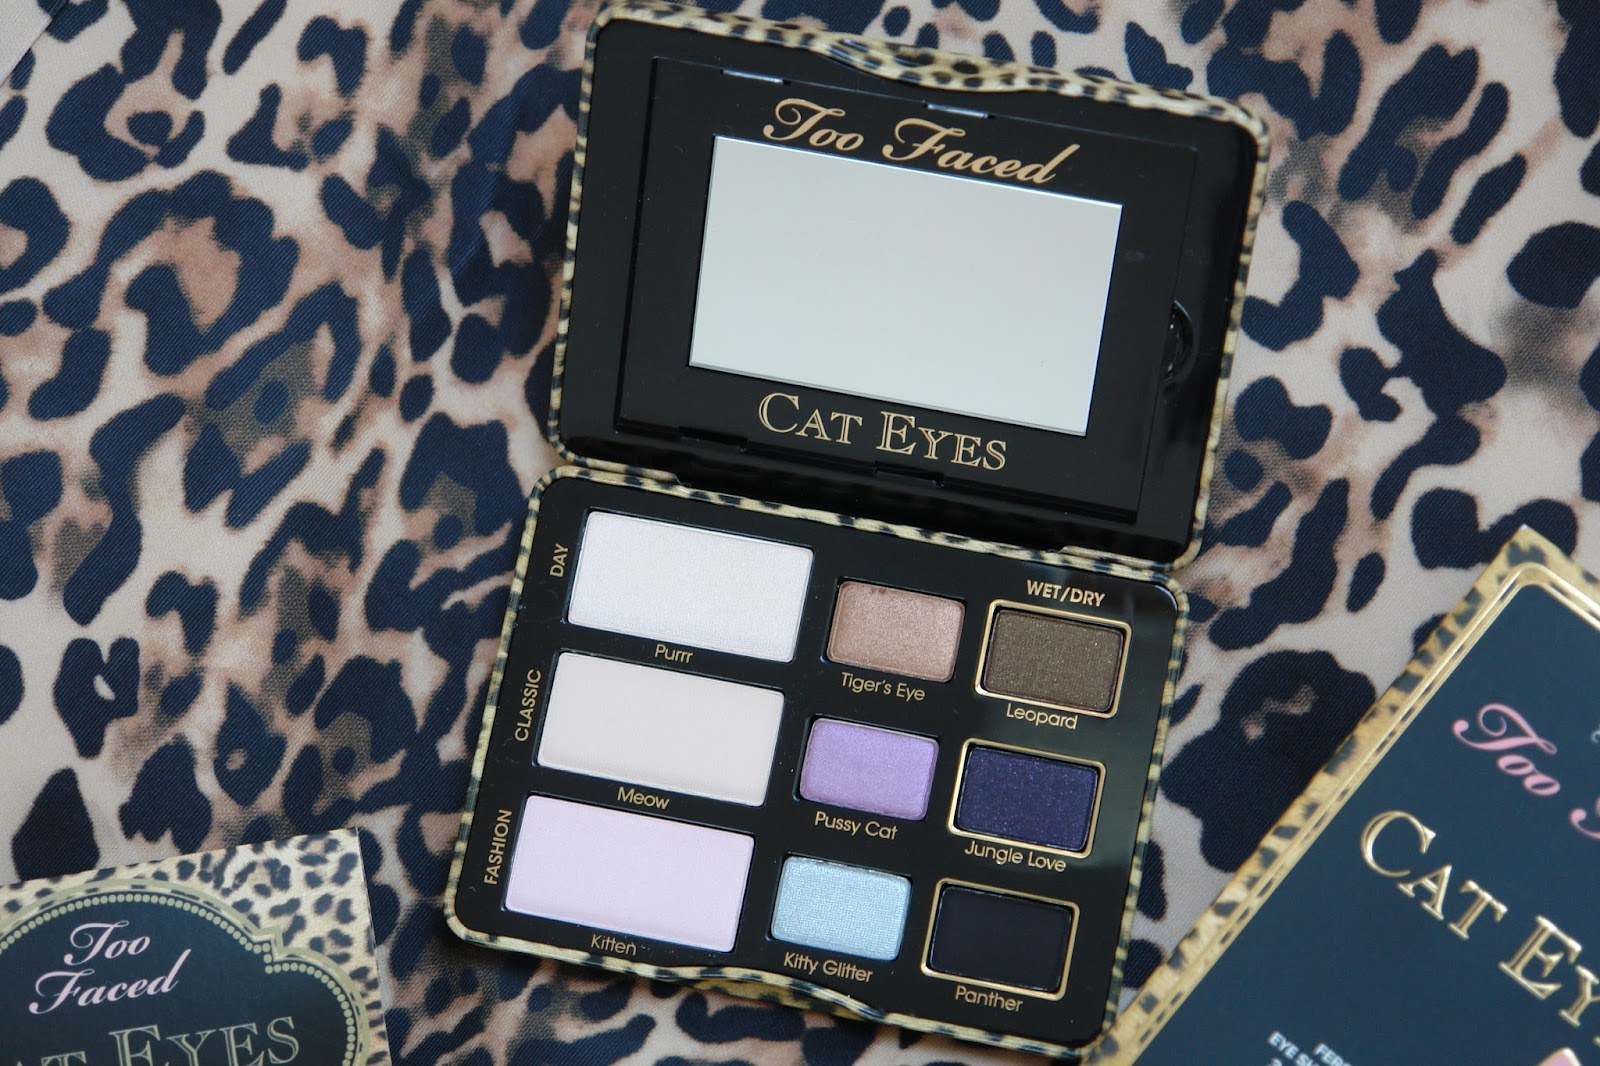 Too Faced Cat Eye Palette review, beauty, eye shadows, make up, palette, review, Too Faced, beauty blog, blogger